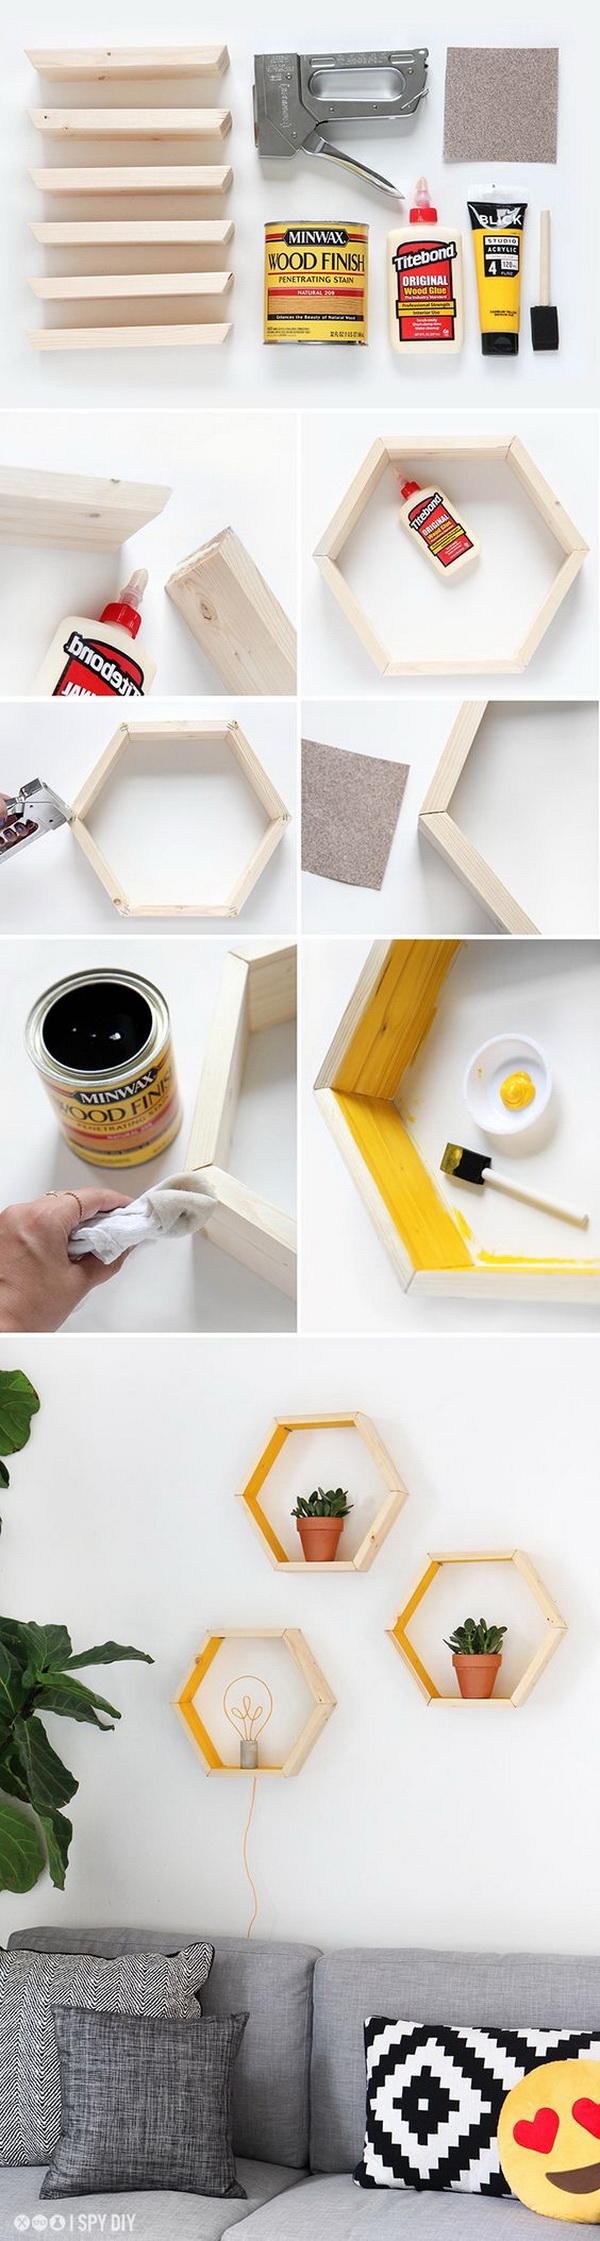 DIY Hexagonal Shelves. A hexagon is a six-sided shape that is well suited for making a shelved unit for decorations or plants. Try to make your own one and add more character and style to your home decor.